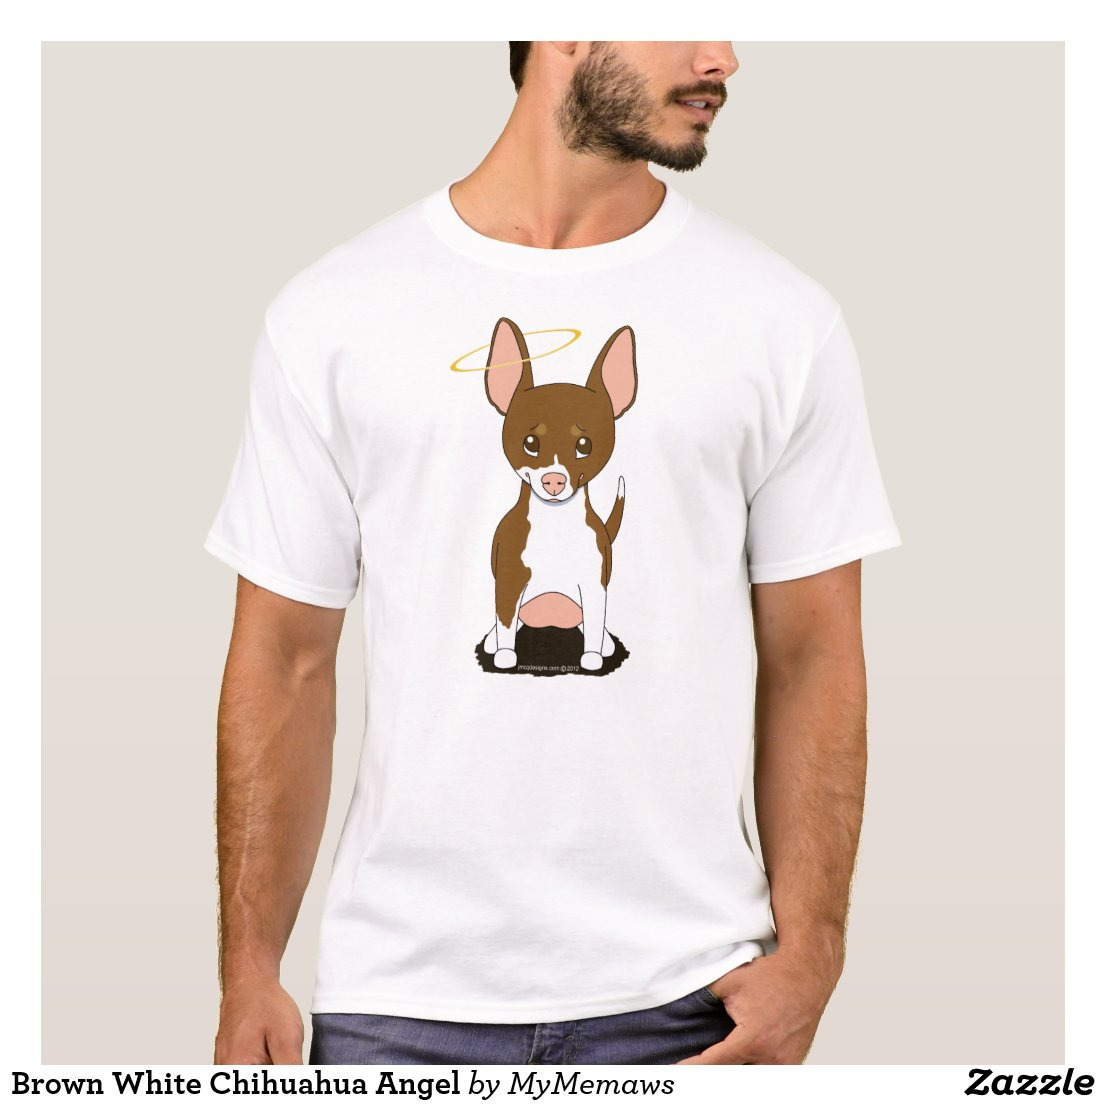 Brown and White Chihuahua Angel T-shirt